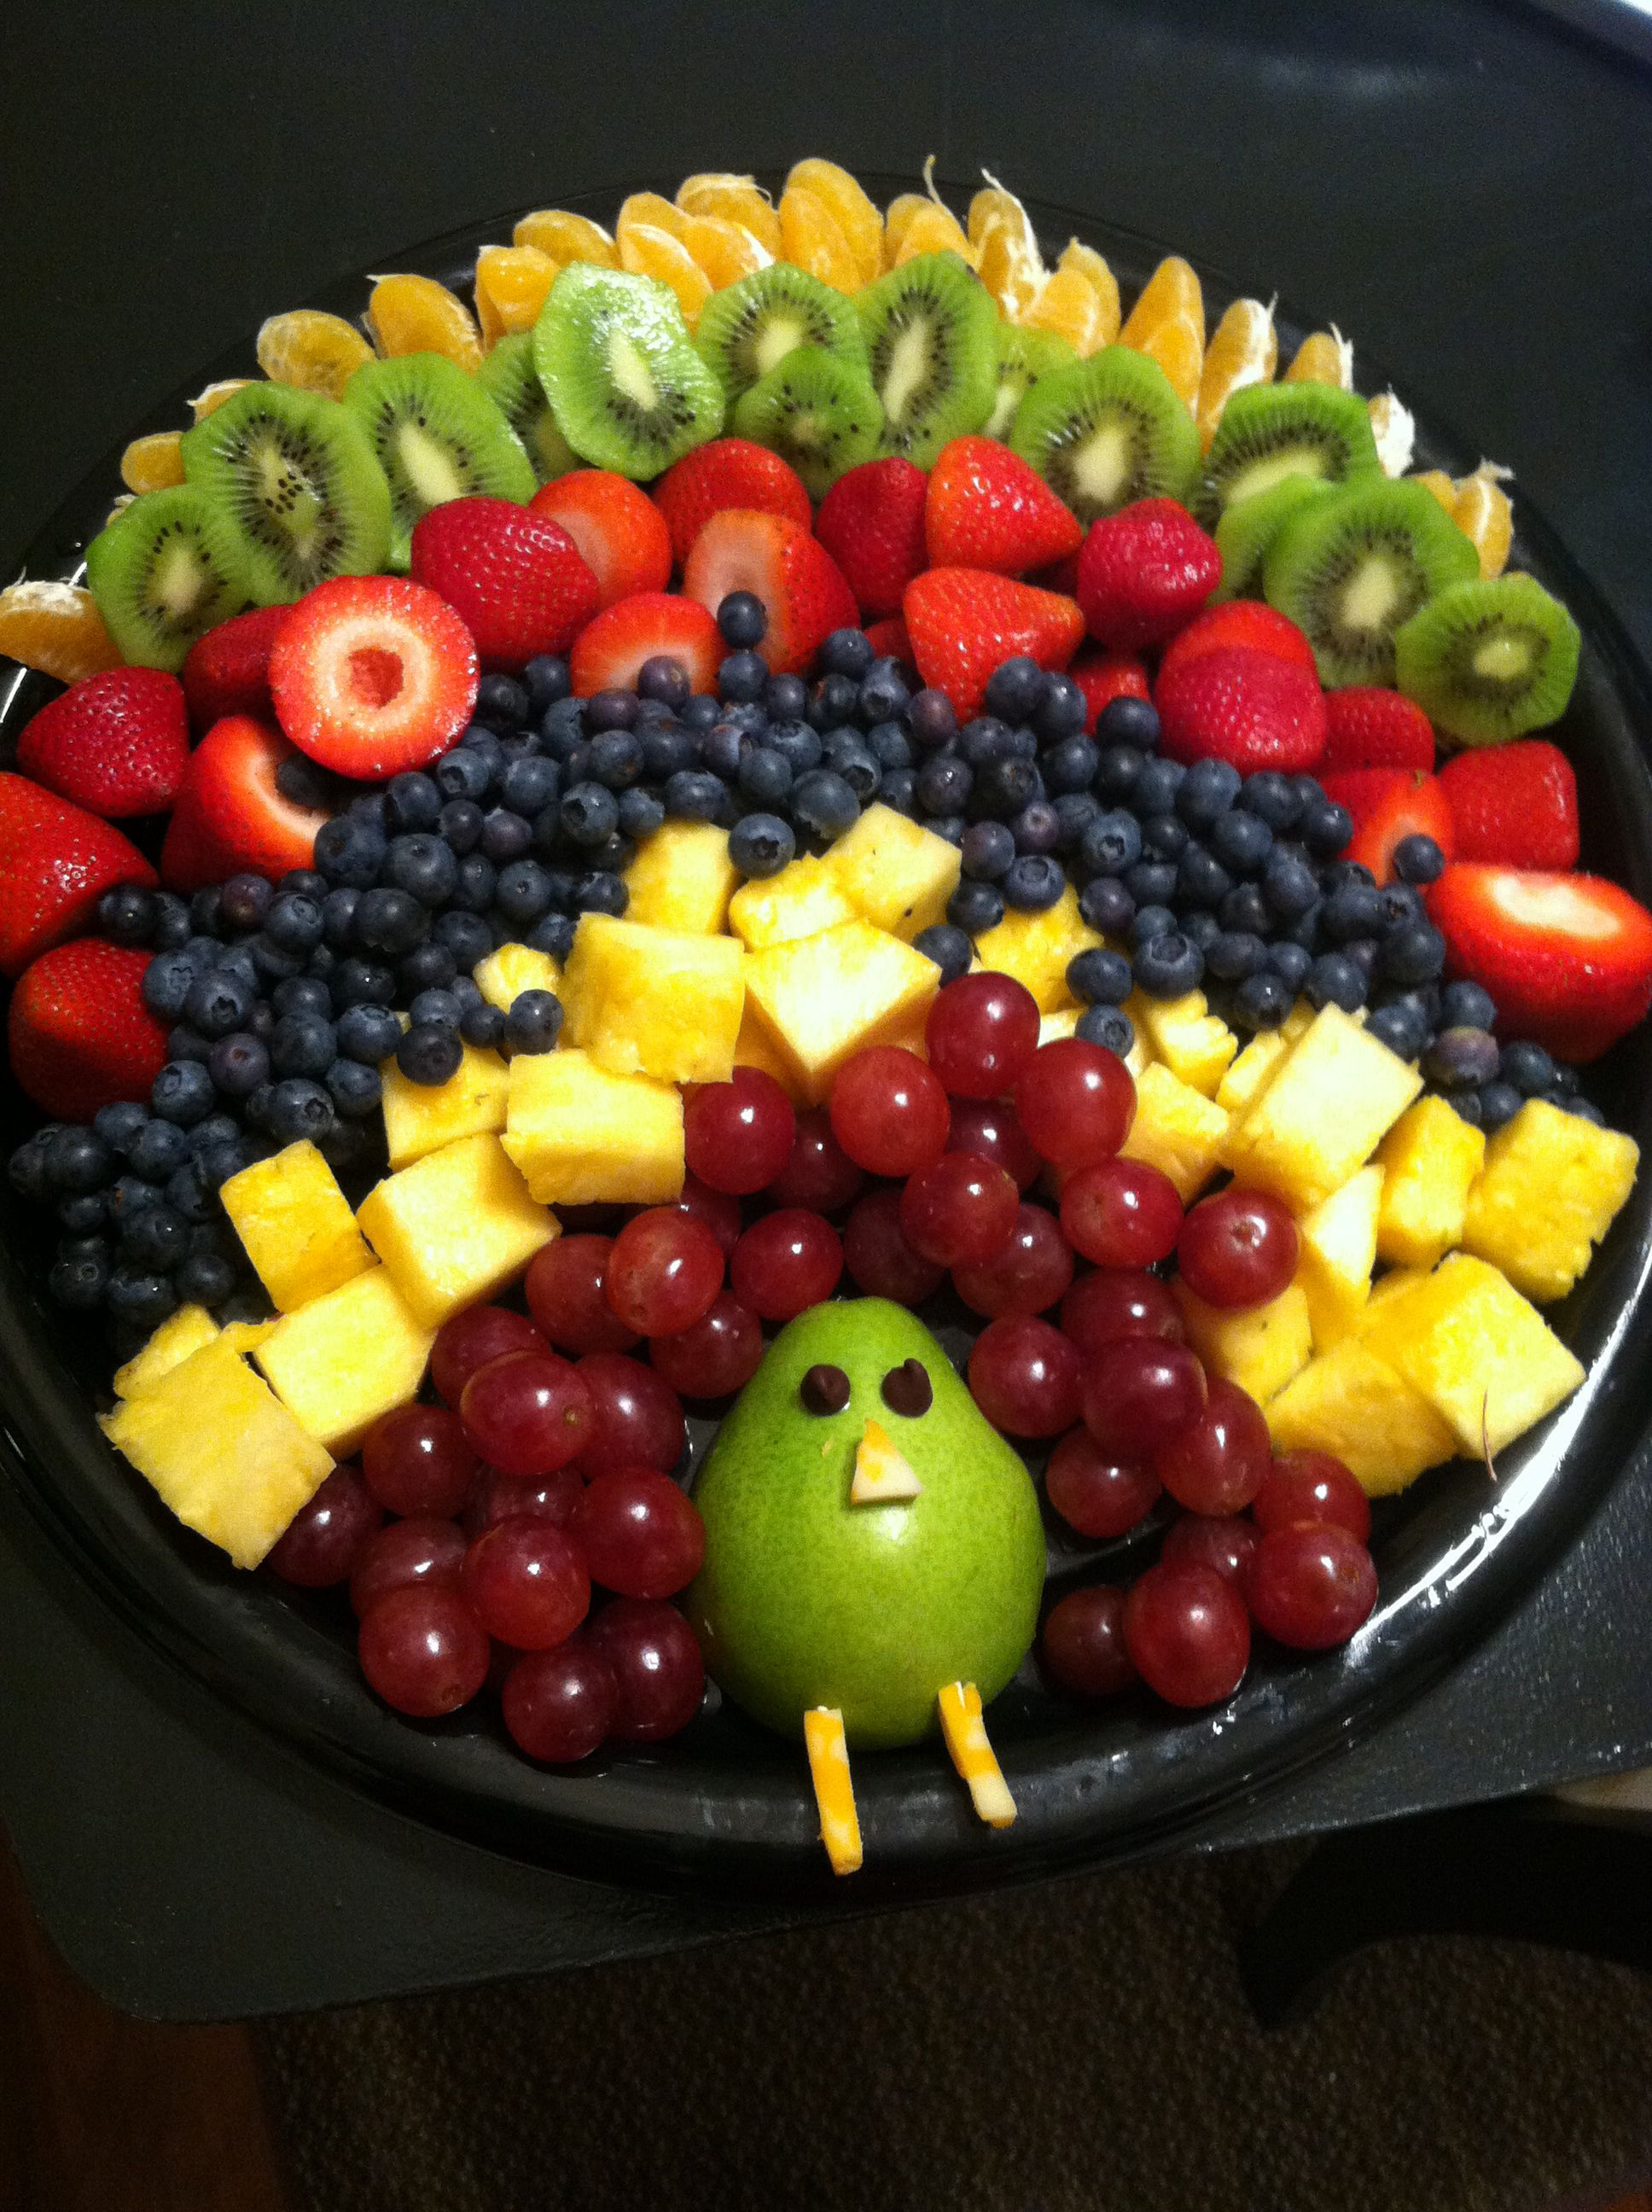 Perfect for a Thanksgiving party at school or a family celebration, this turkey fruit platter is definitely an idea to keep on hand this fall season. It's a great way to incorporate some healthy treats in .